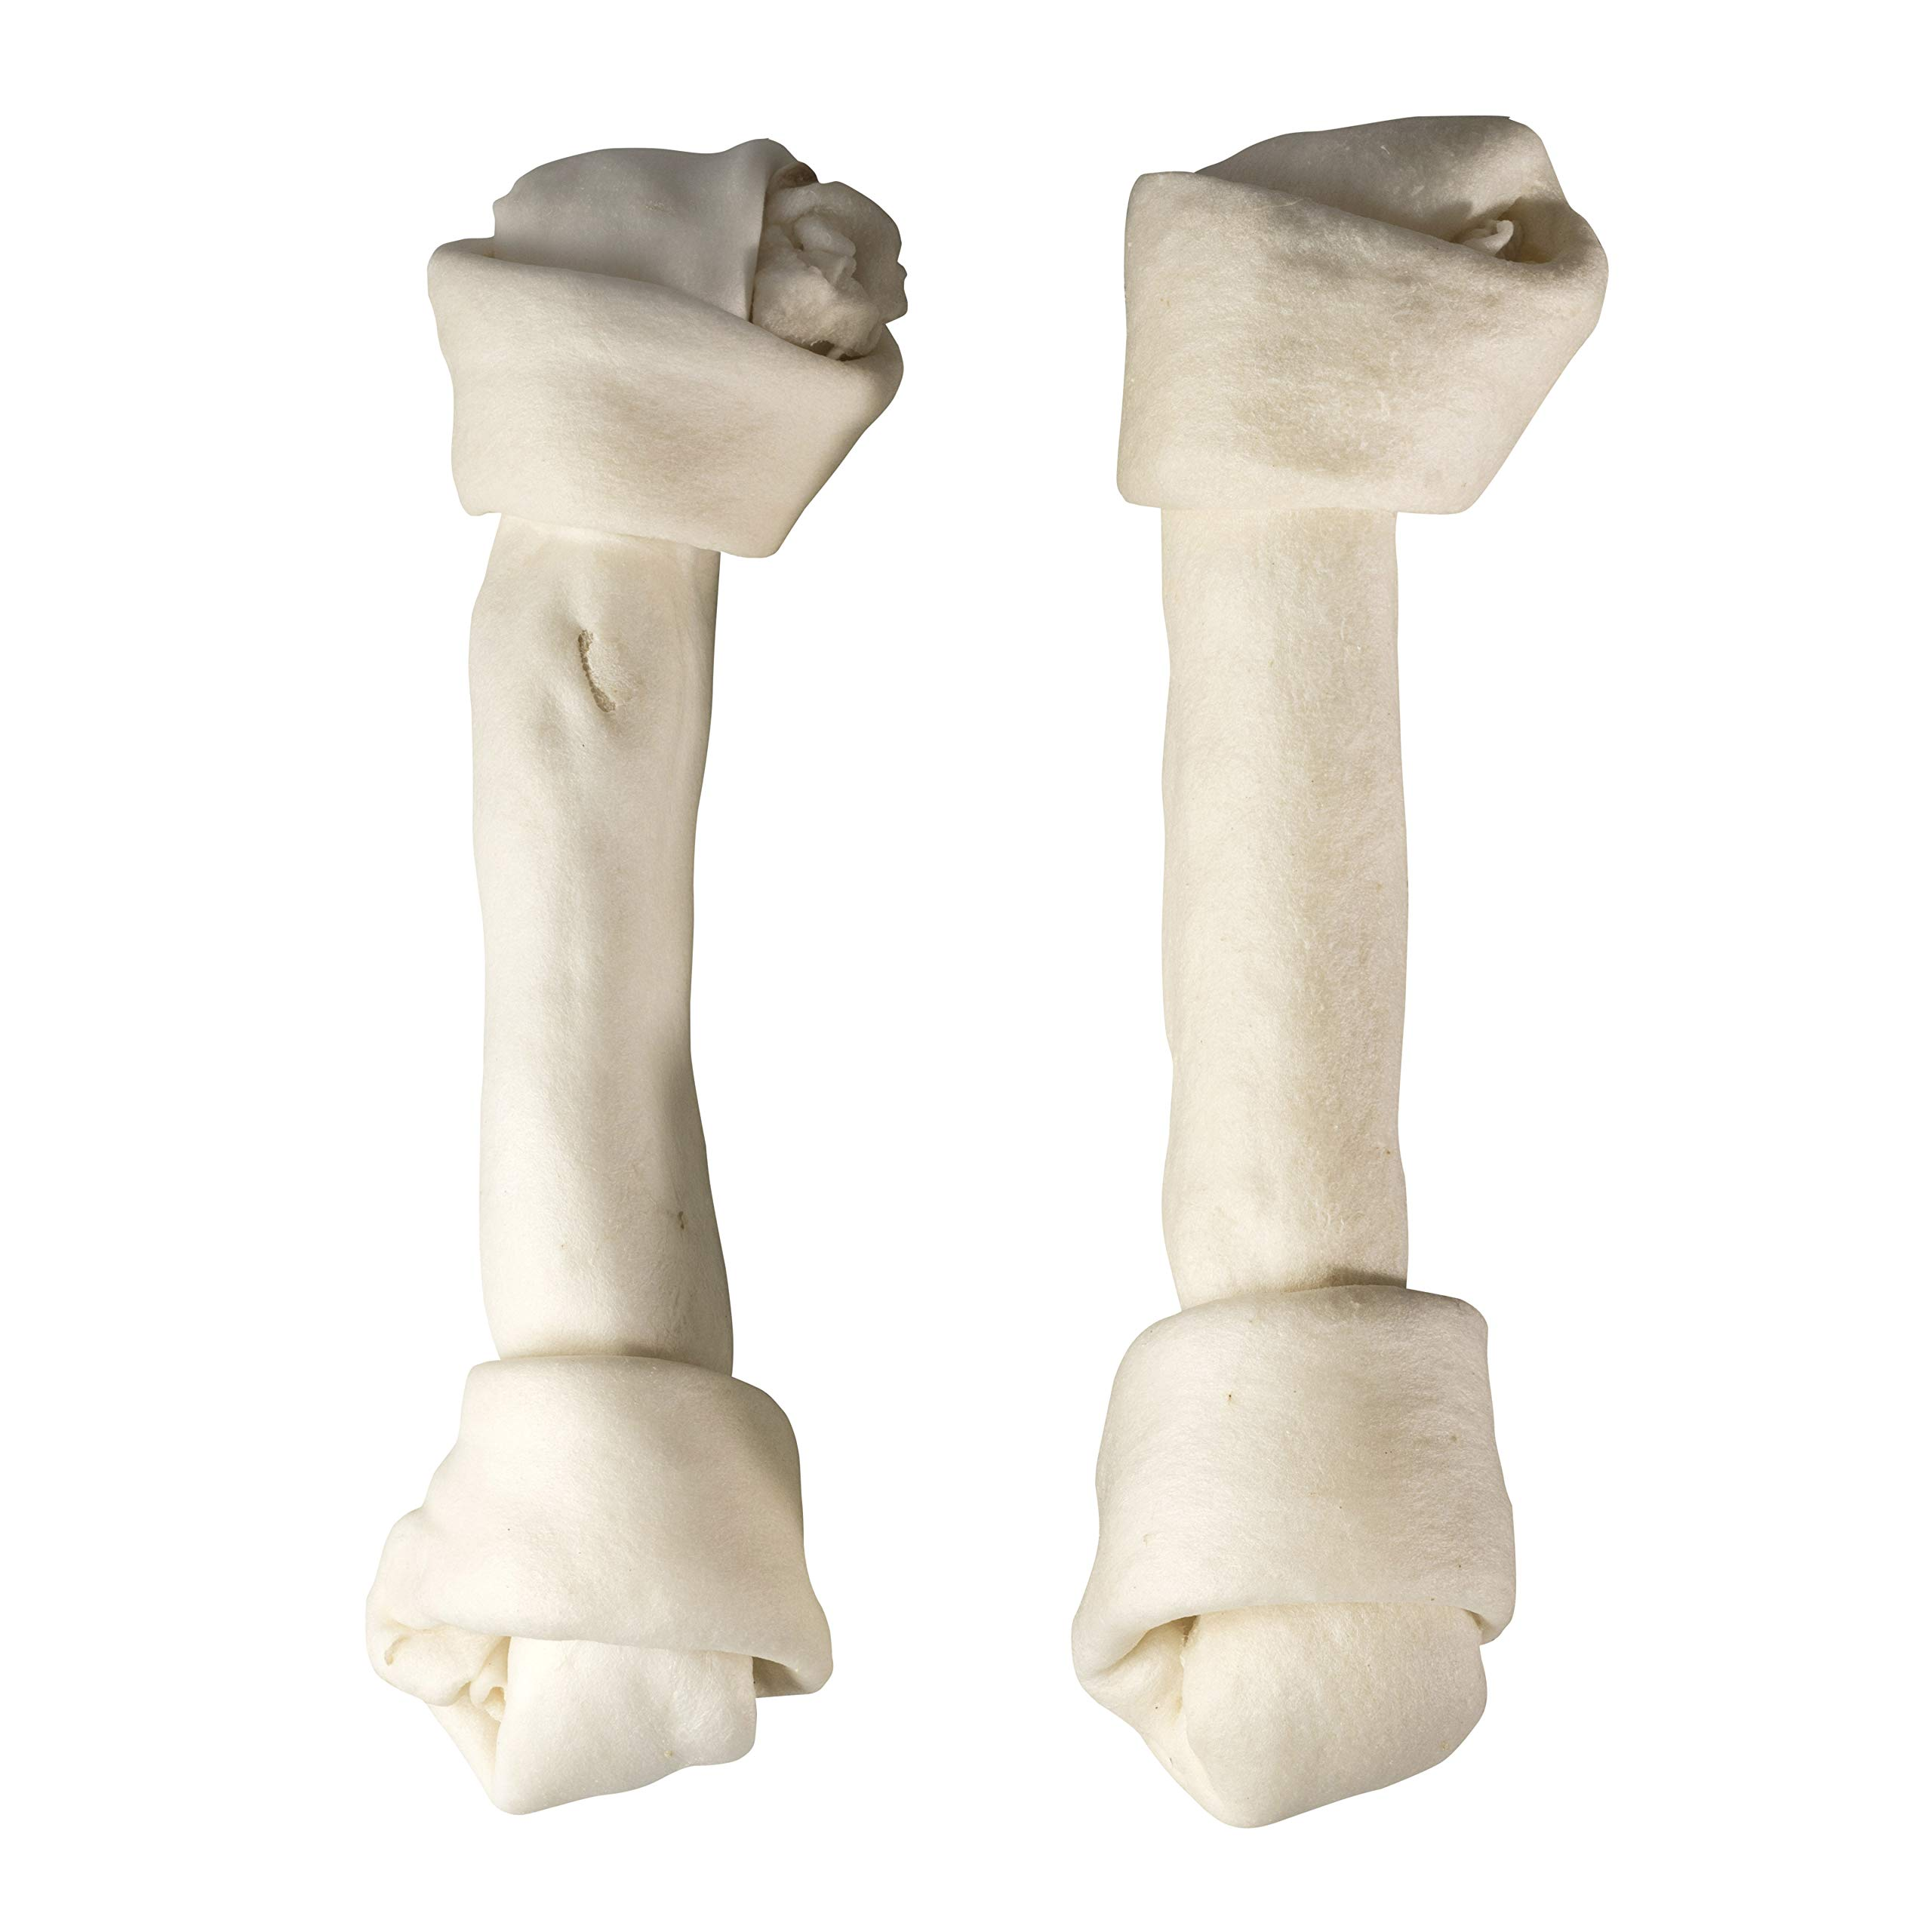 TheLittleThingsThatCount Premium 12 inch Natural Rawhide Knotted Bones Chews Treats Large Dogs Re-sealable Bag FDA Approved - 2pc Pack ♥♥♥